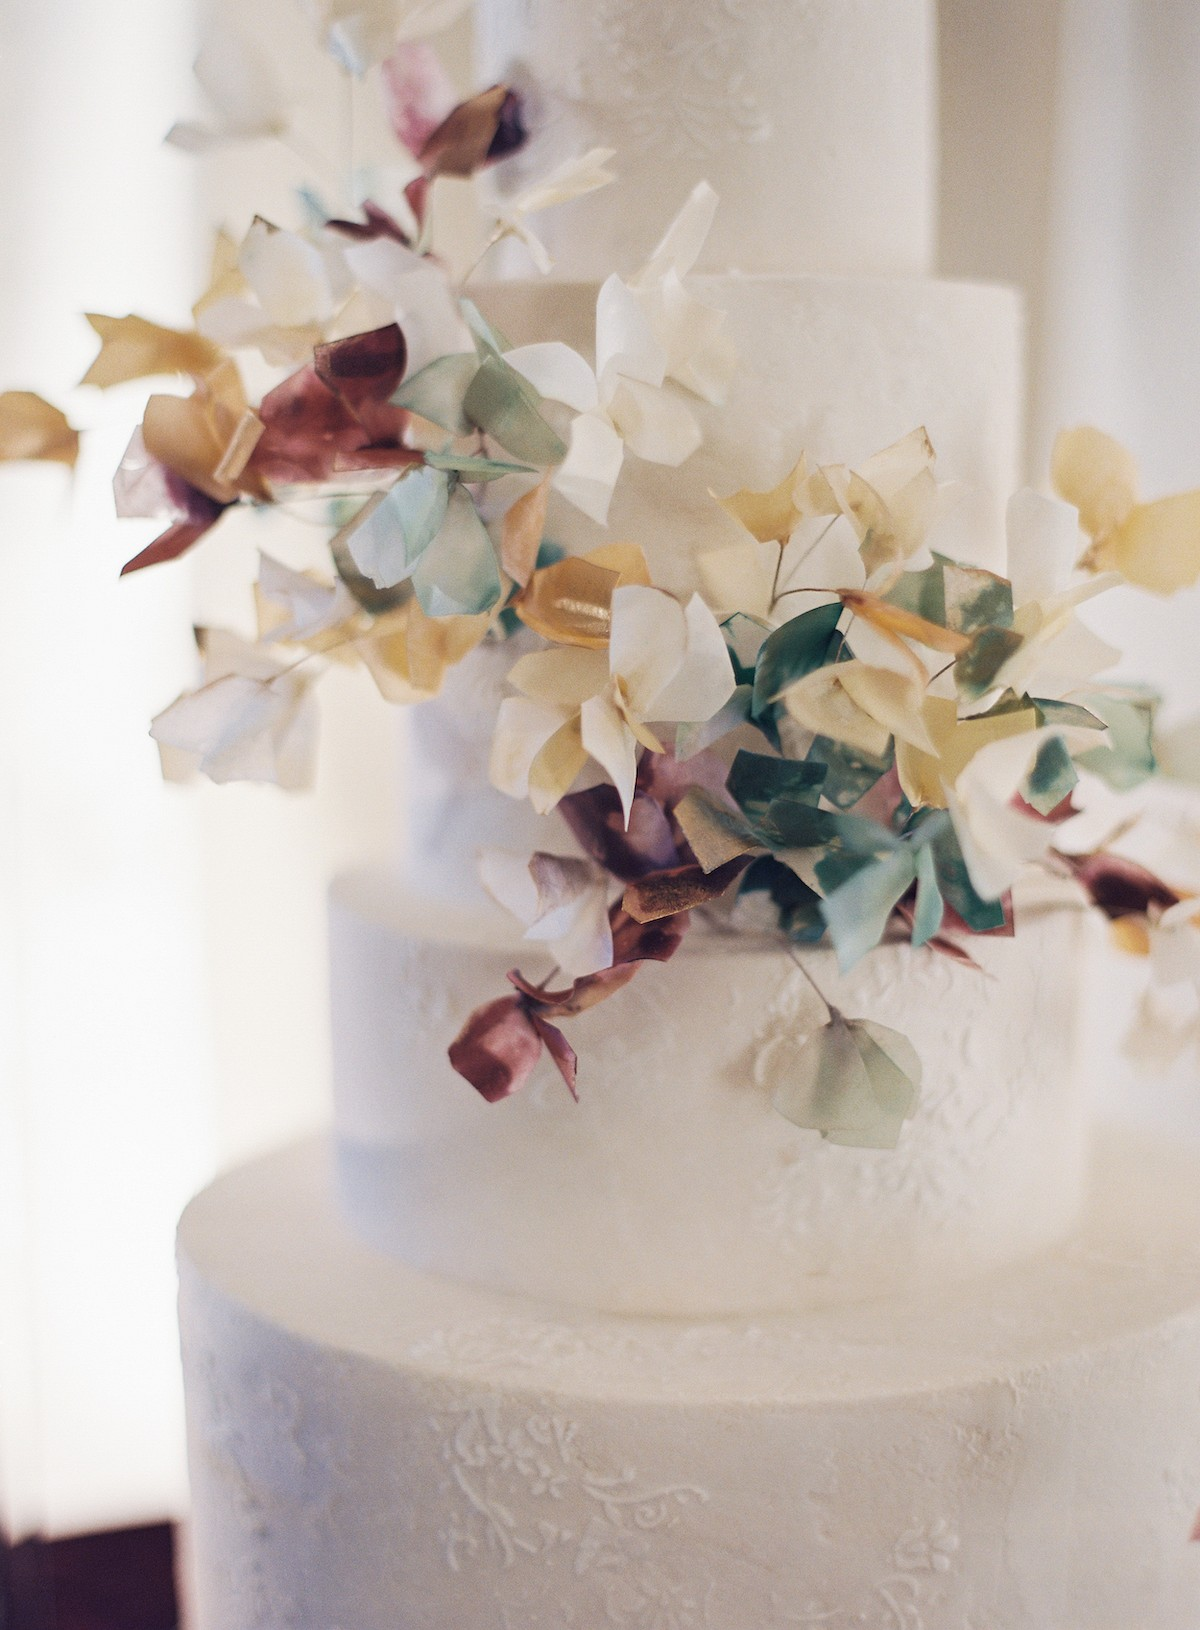 Laguna Beach Wedding With The Most Colorful Floral Aisle You've Ever Seen!